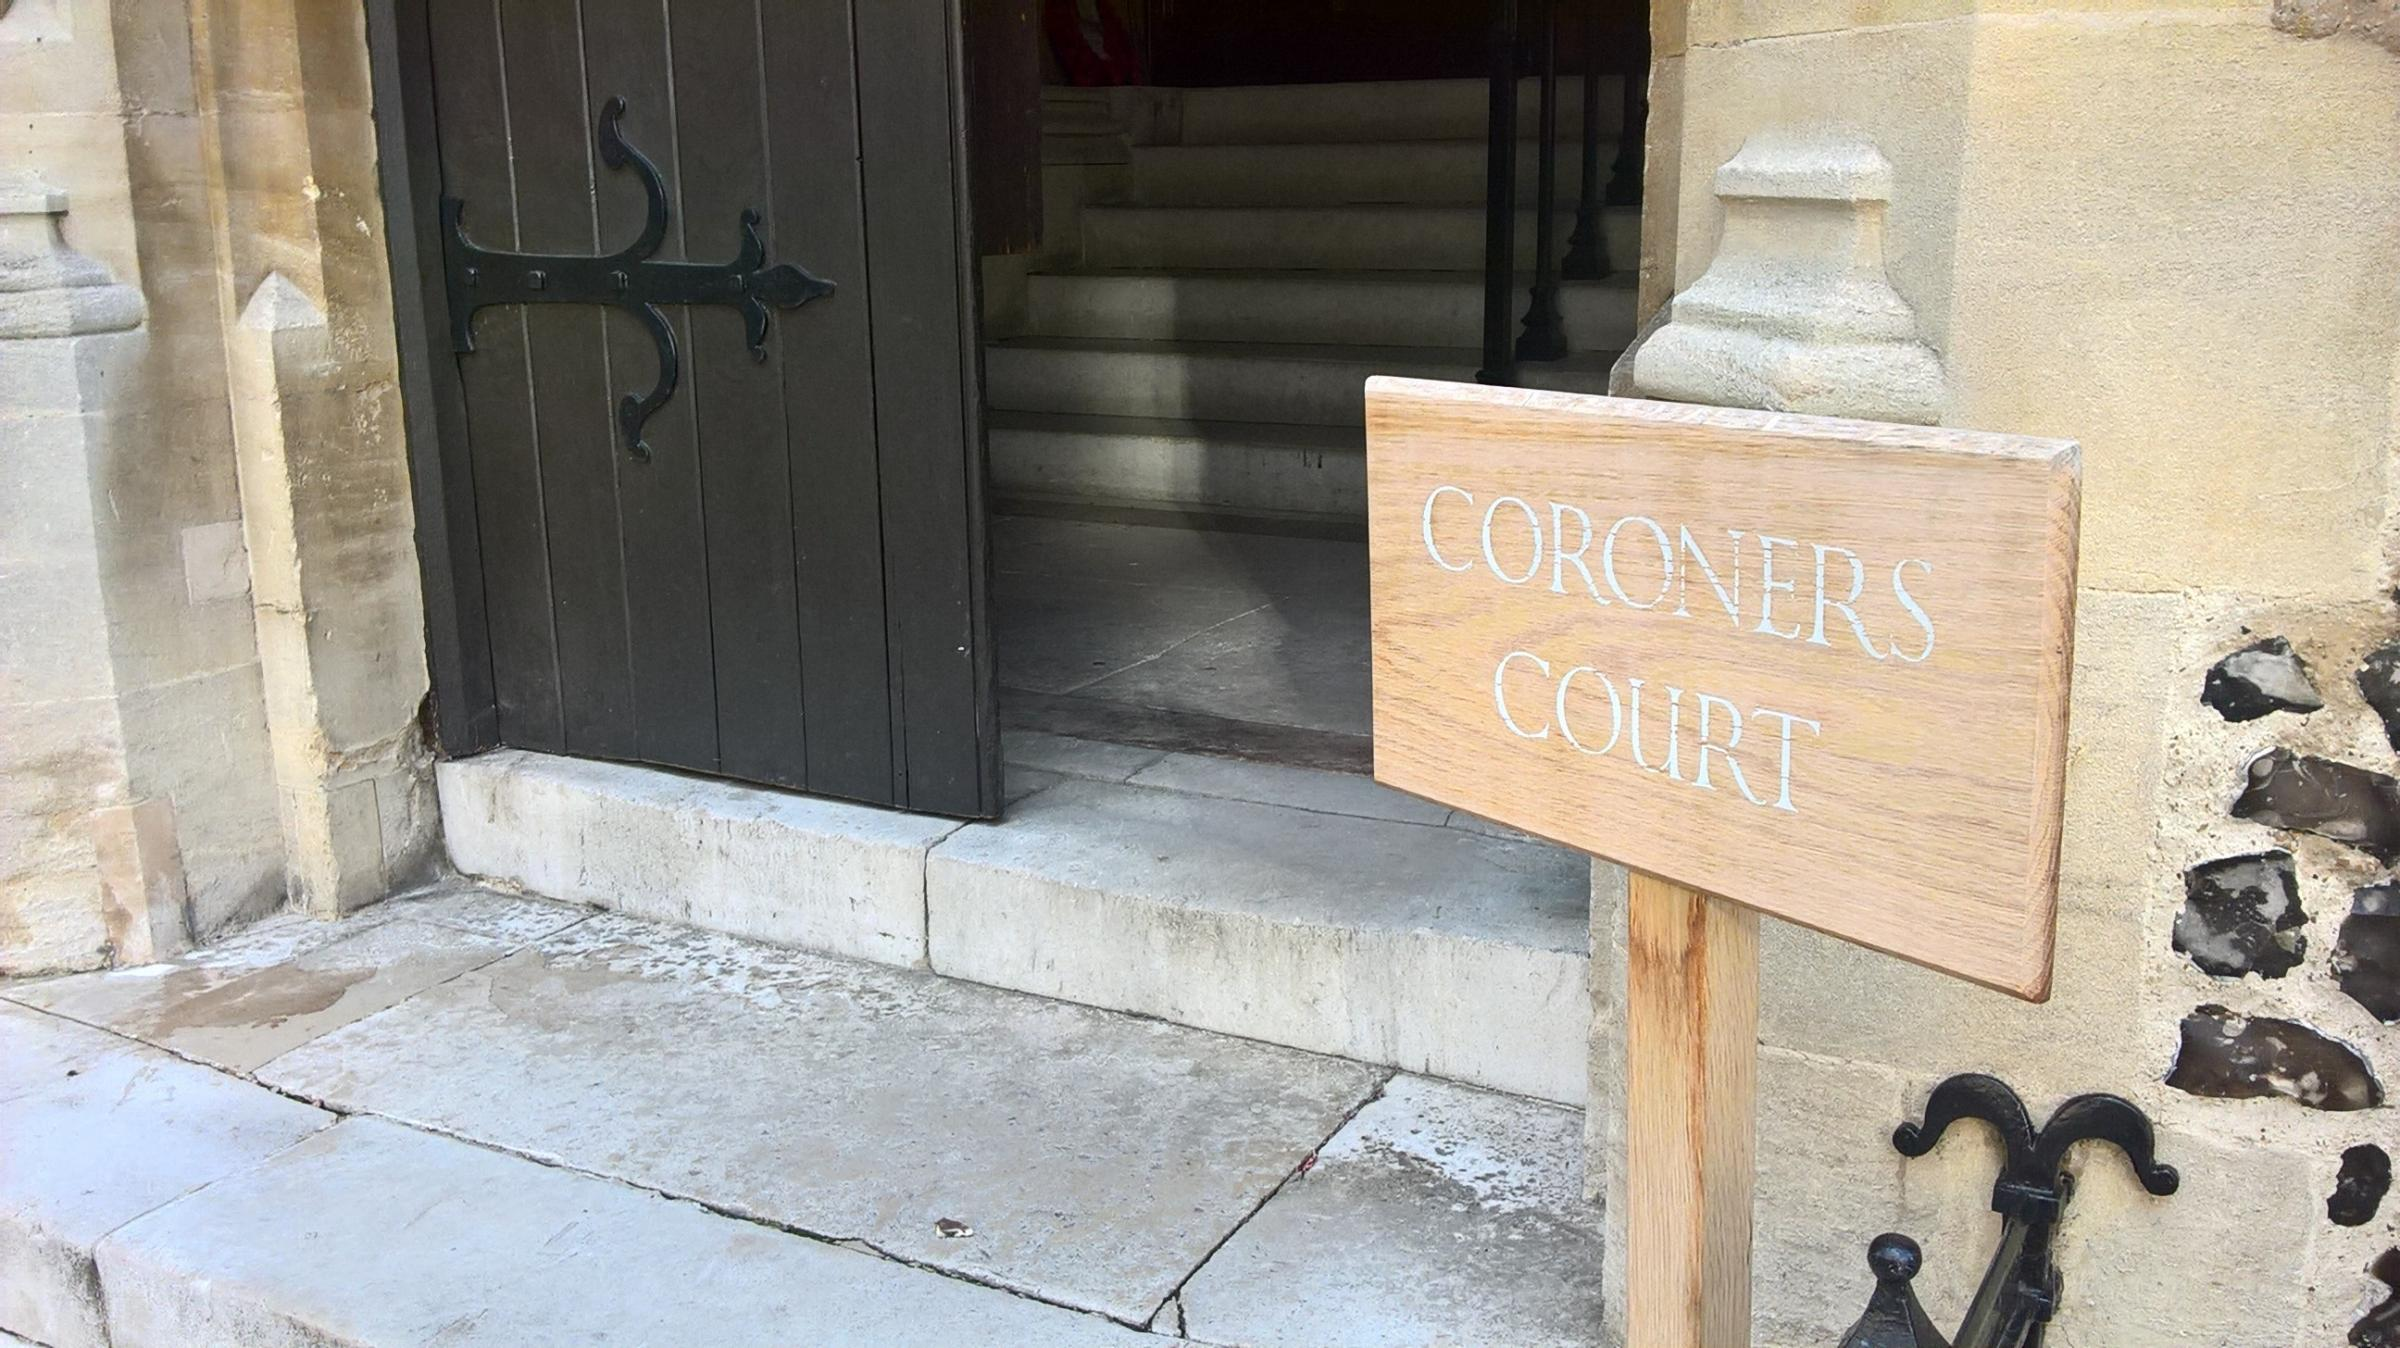 Inquest opens into death of woman, 79, who suffered fall in hospital